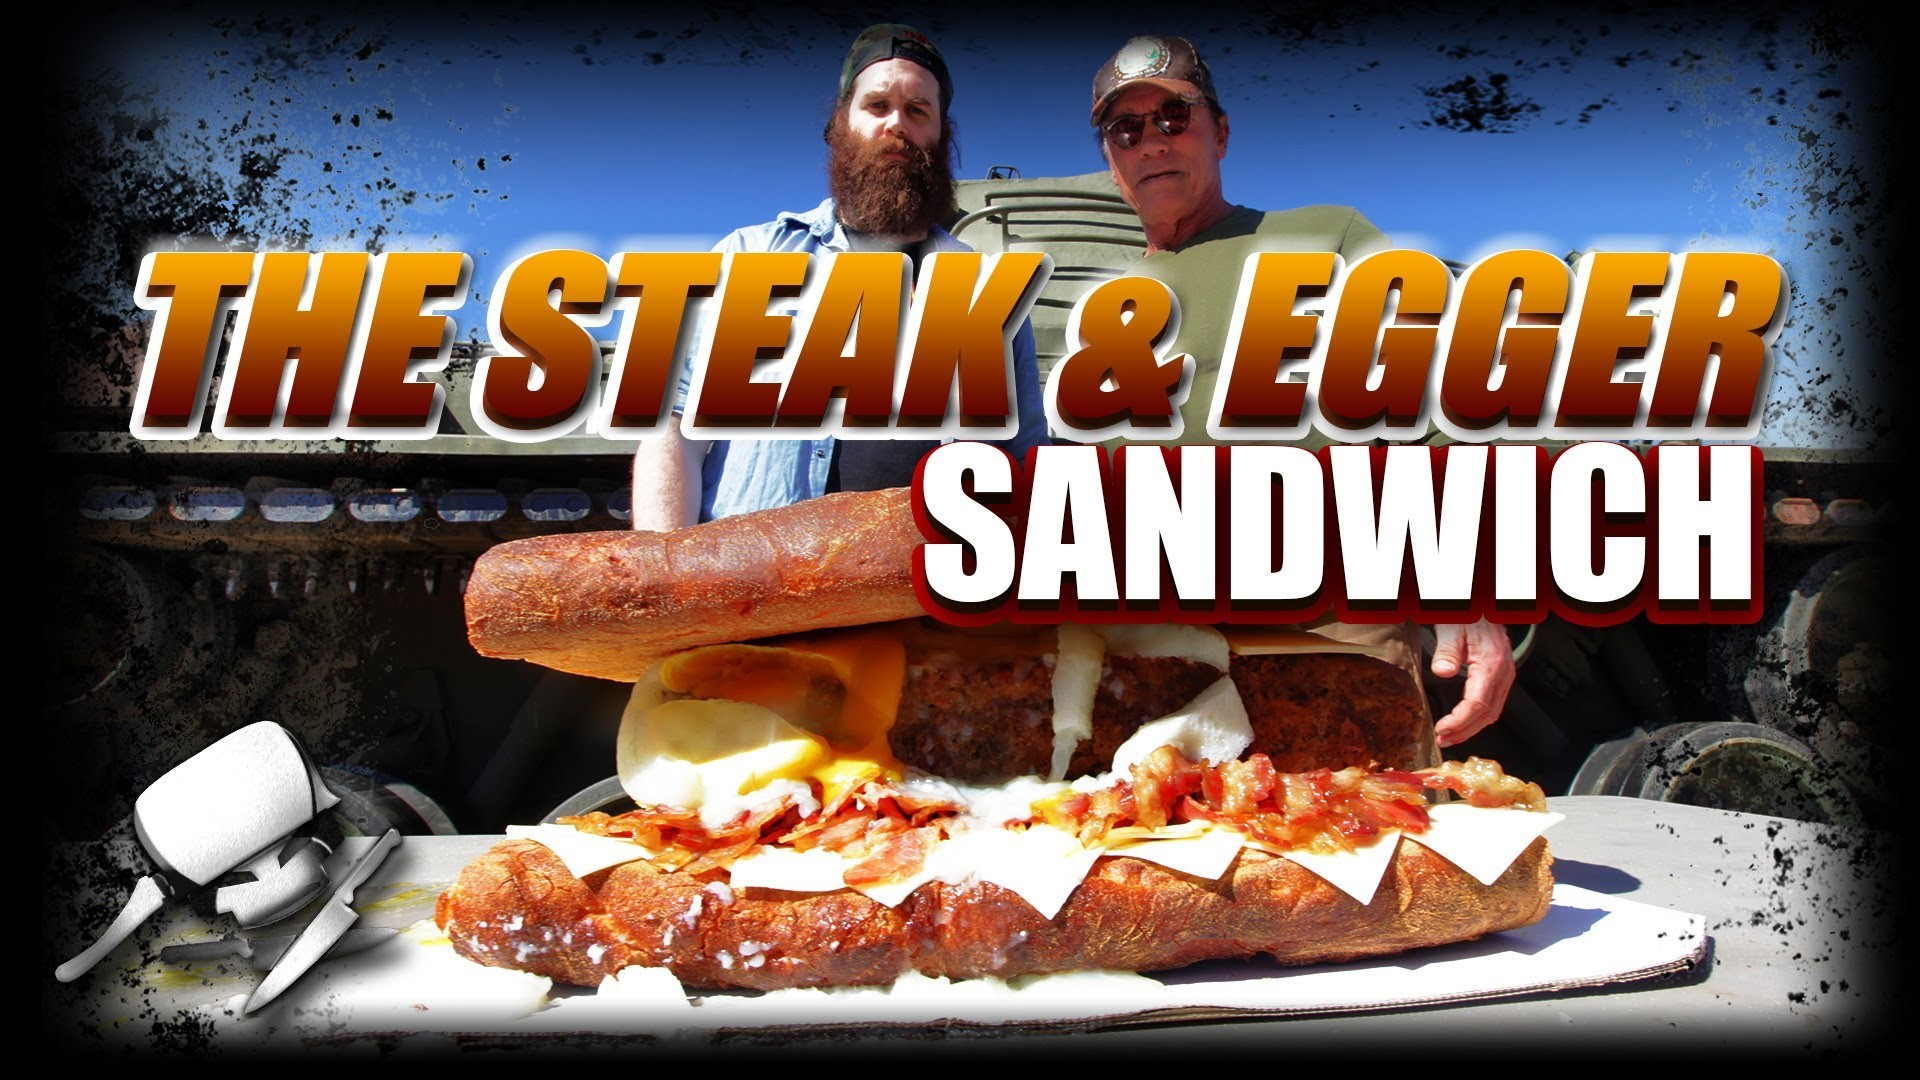 The Steak & Egger Sandwich - Epic Meal Time w. Arnold Schwarzenegger